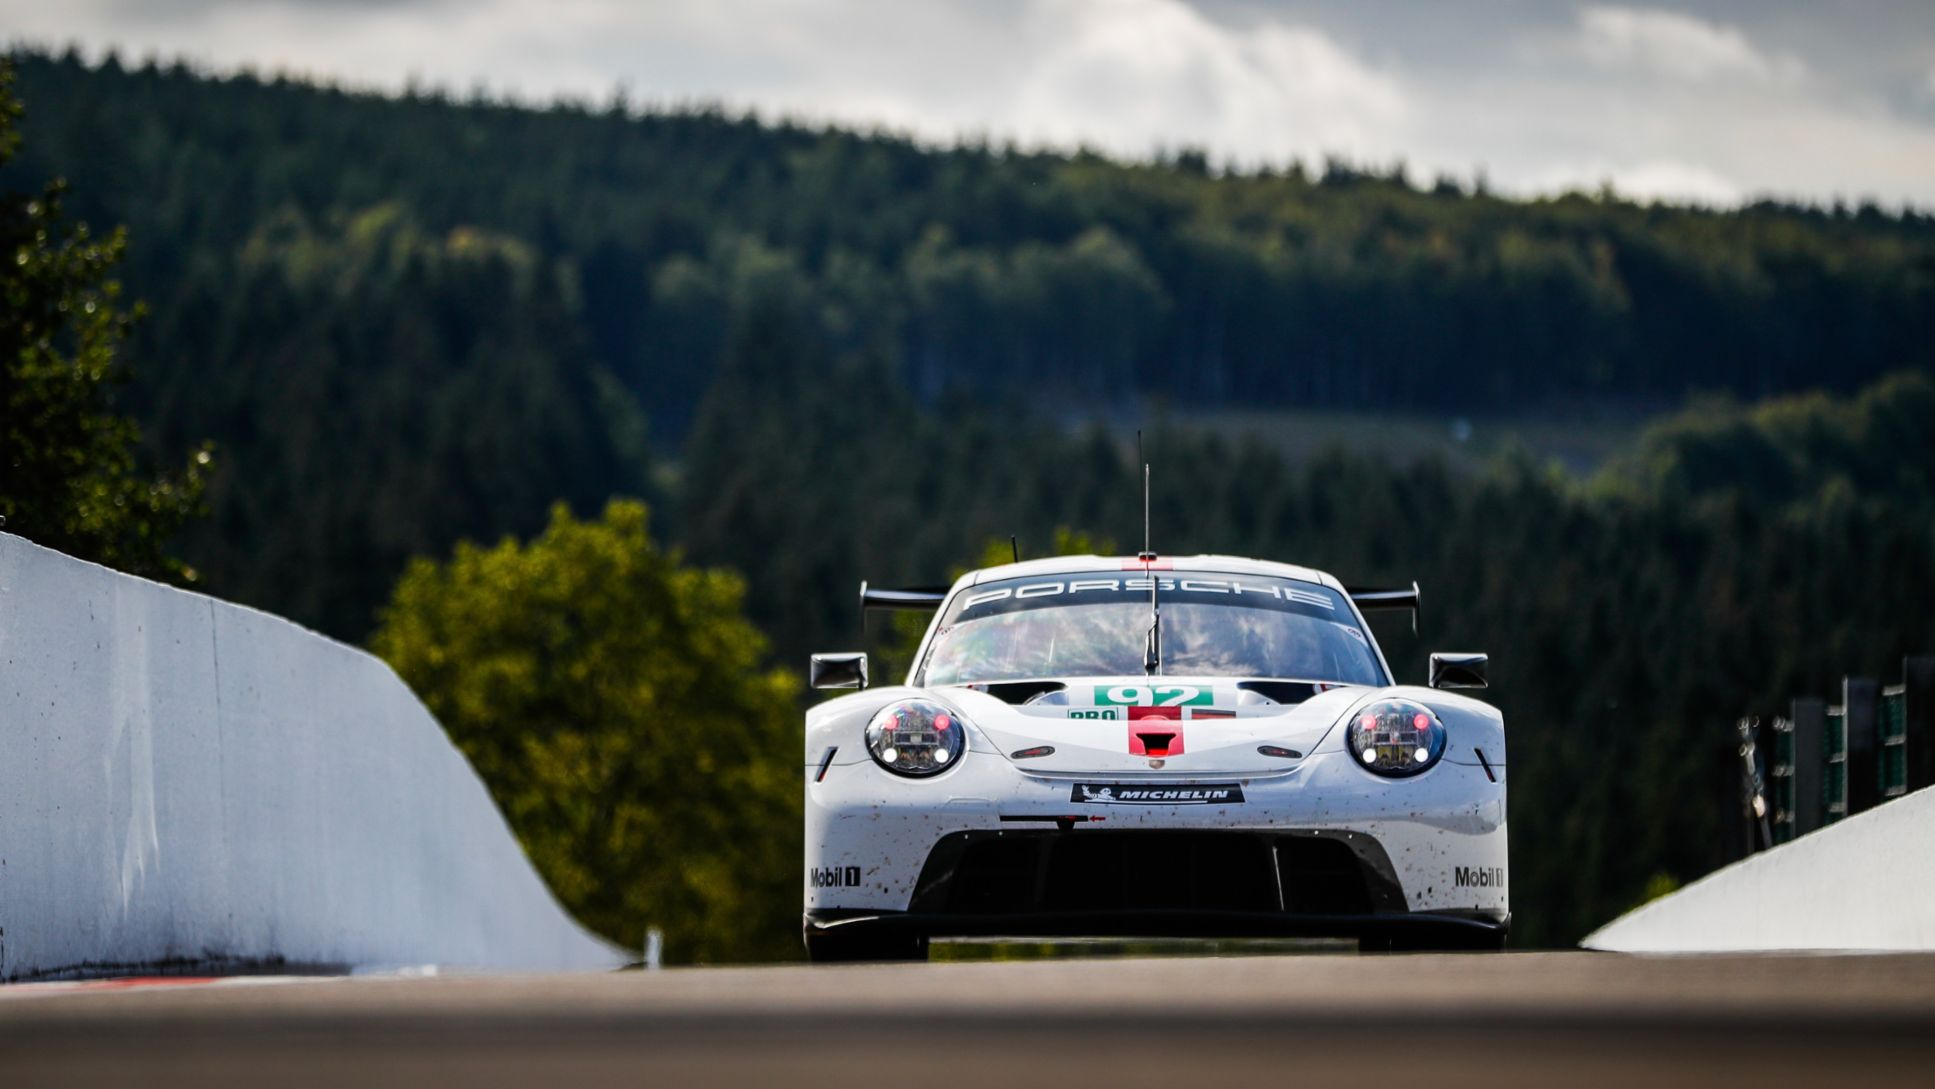 Data from the Porsche 911 RSR transferred in milliseconds - Image 8